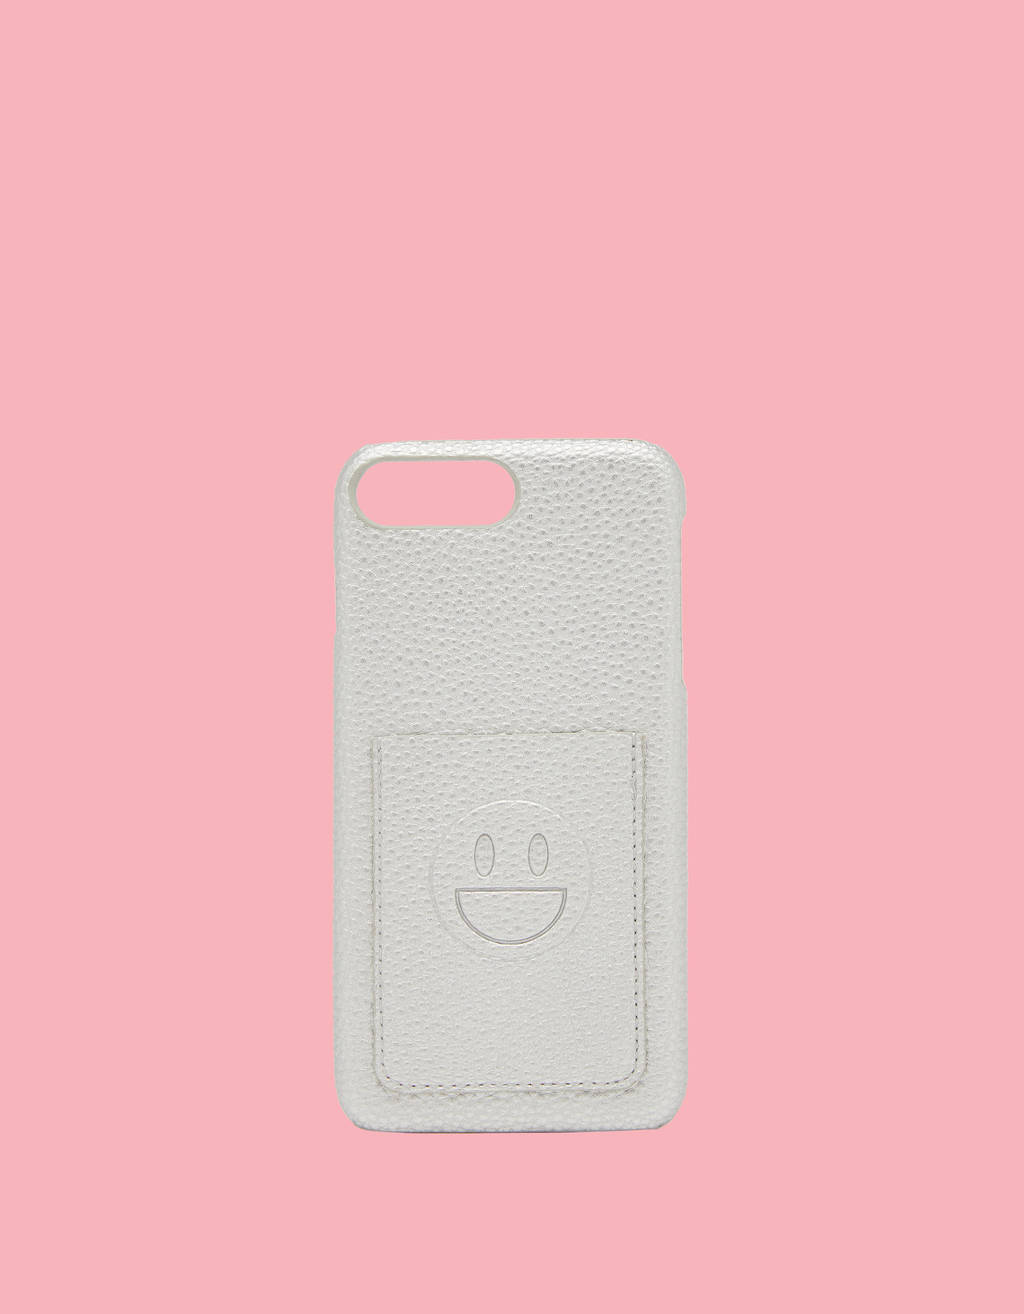 Funda Smile iPhone 6 plus / 7 plus / 8 plus